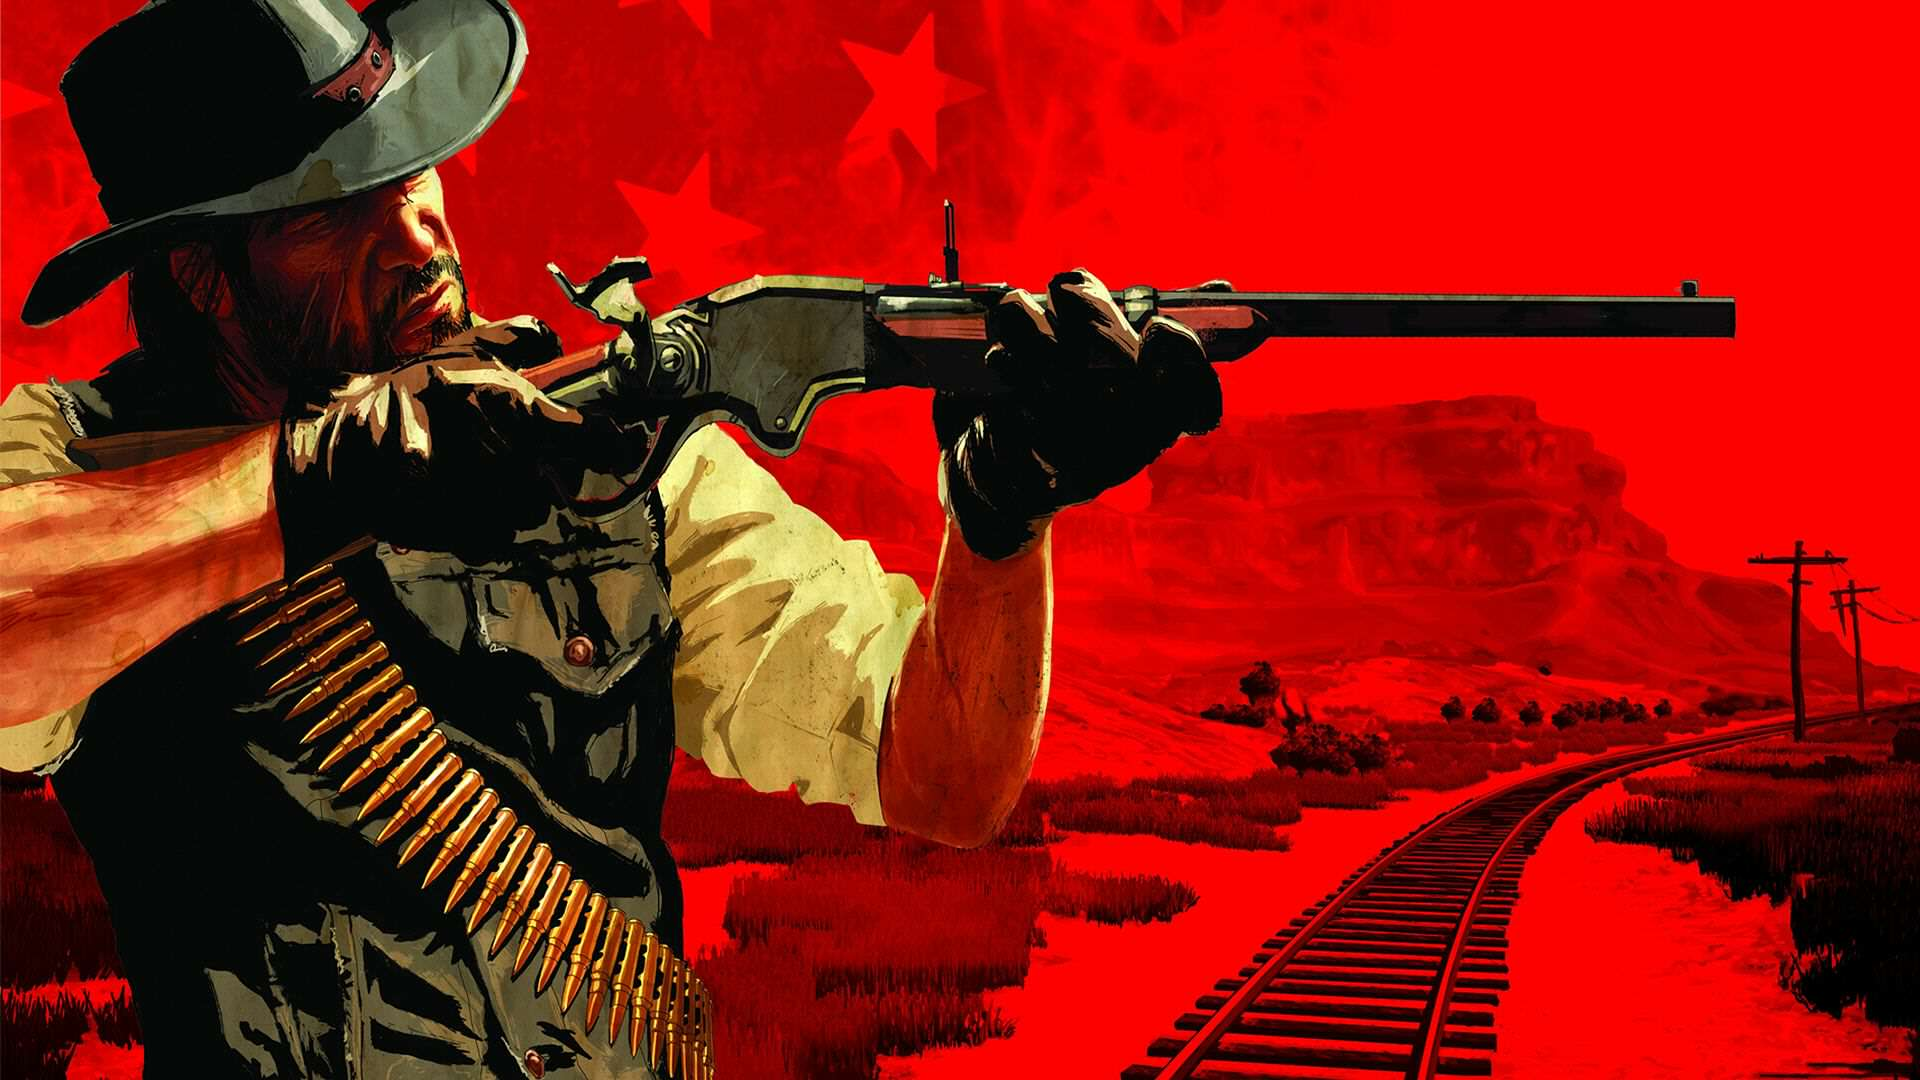 fan-theory-jack-marston-was-the-reason-for-spoilers-s-death-in-red-dead-redemption-r-885602